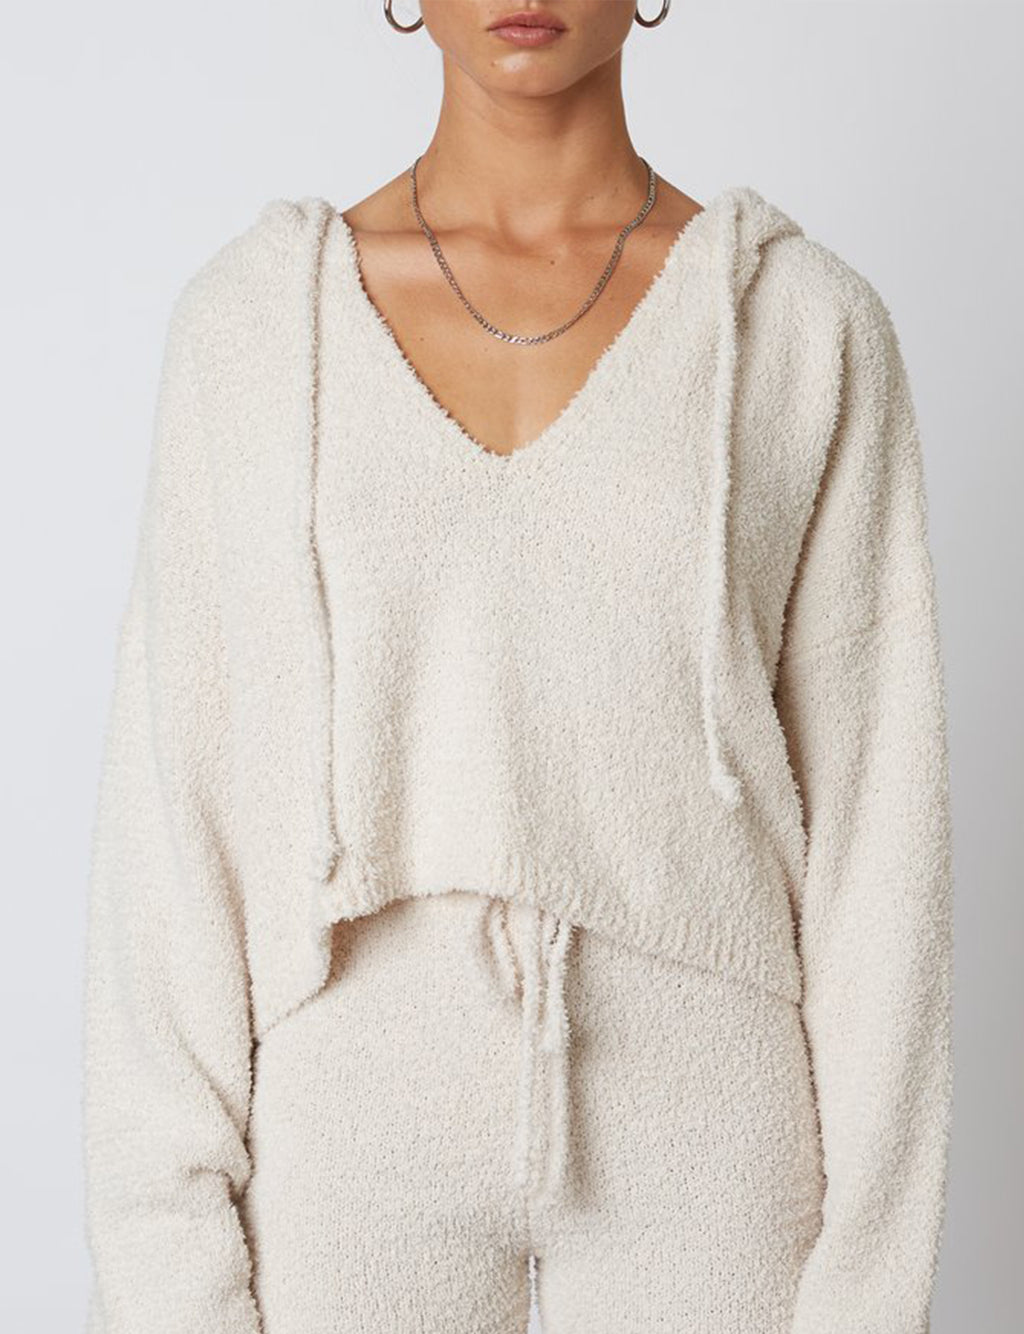 Notched Hooded Sweater in Natural